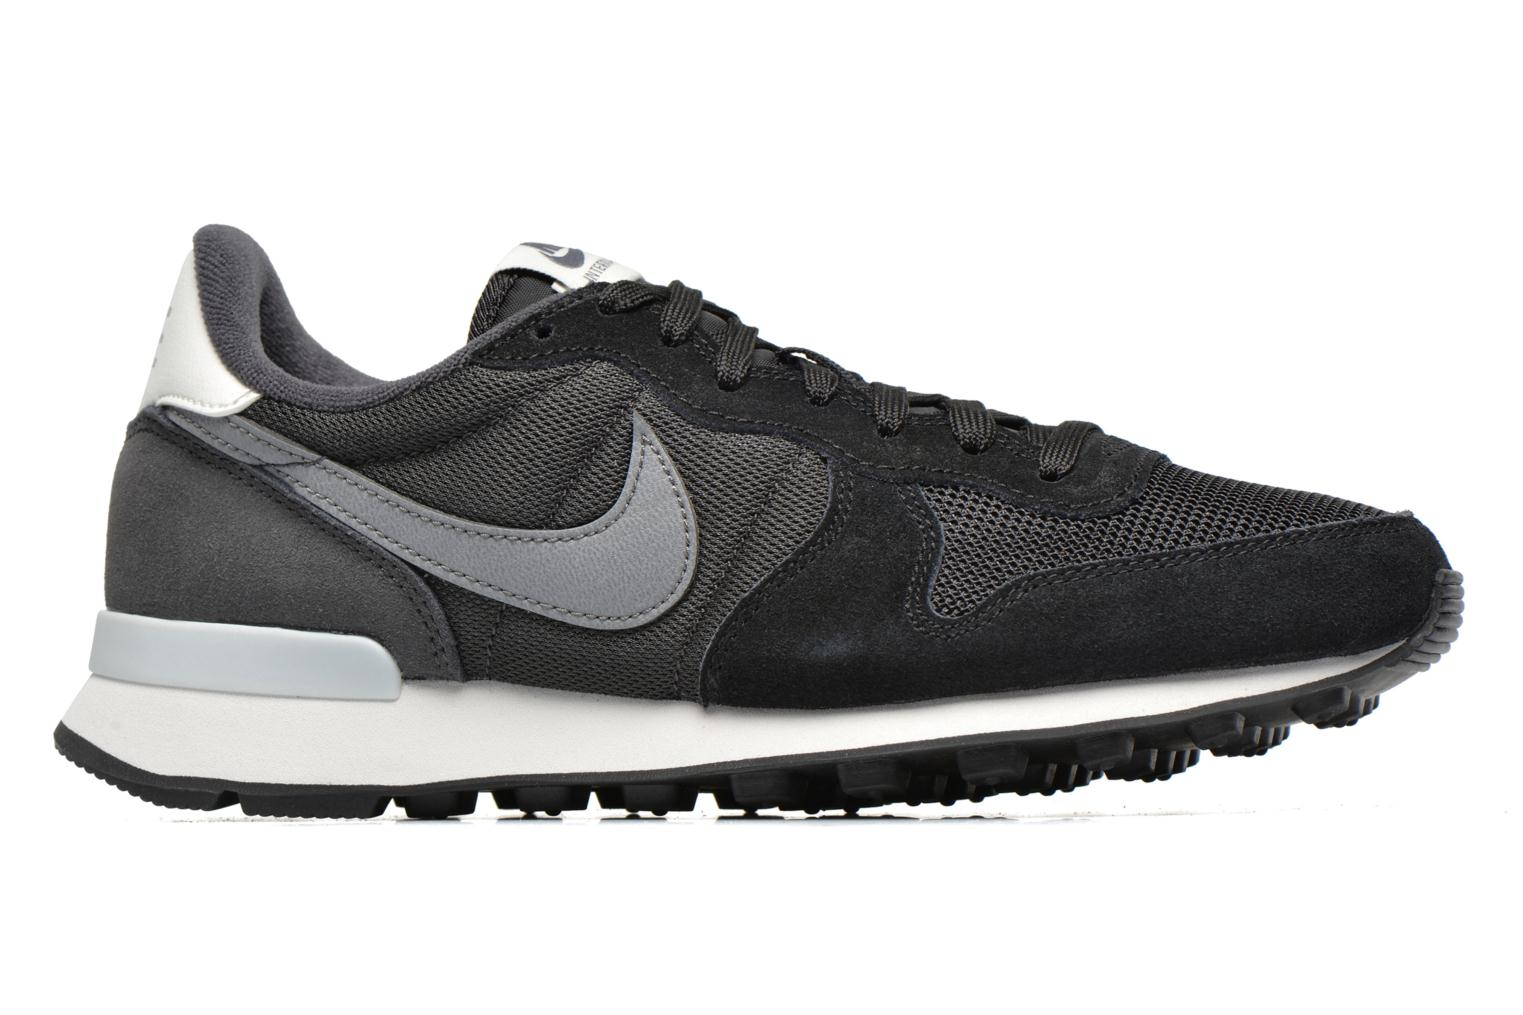 Wmns Nike Internationalist Black/Cl Grey-Anthrct-Pr Pltnm